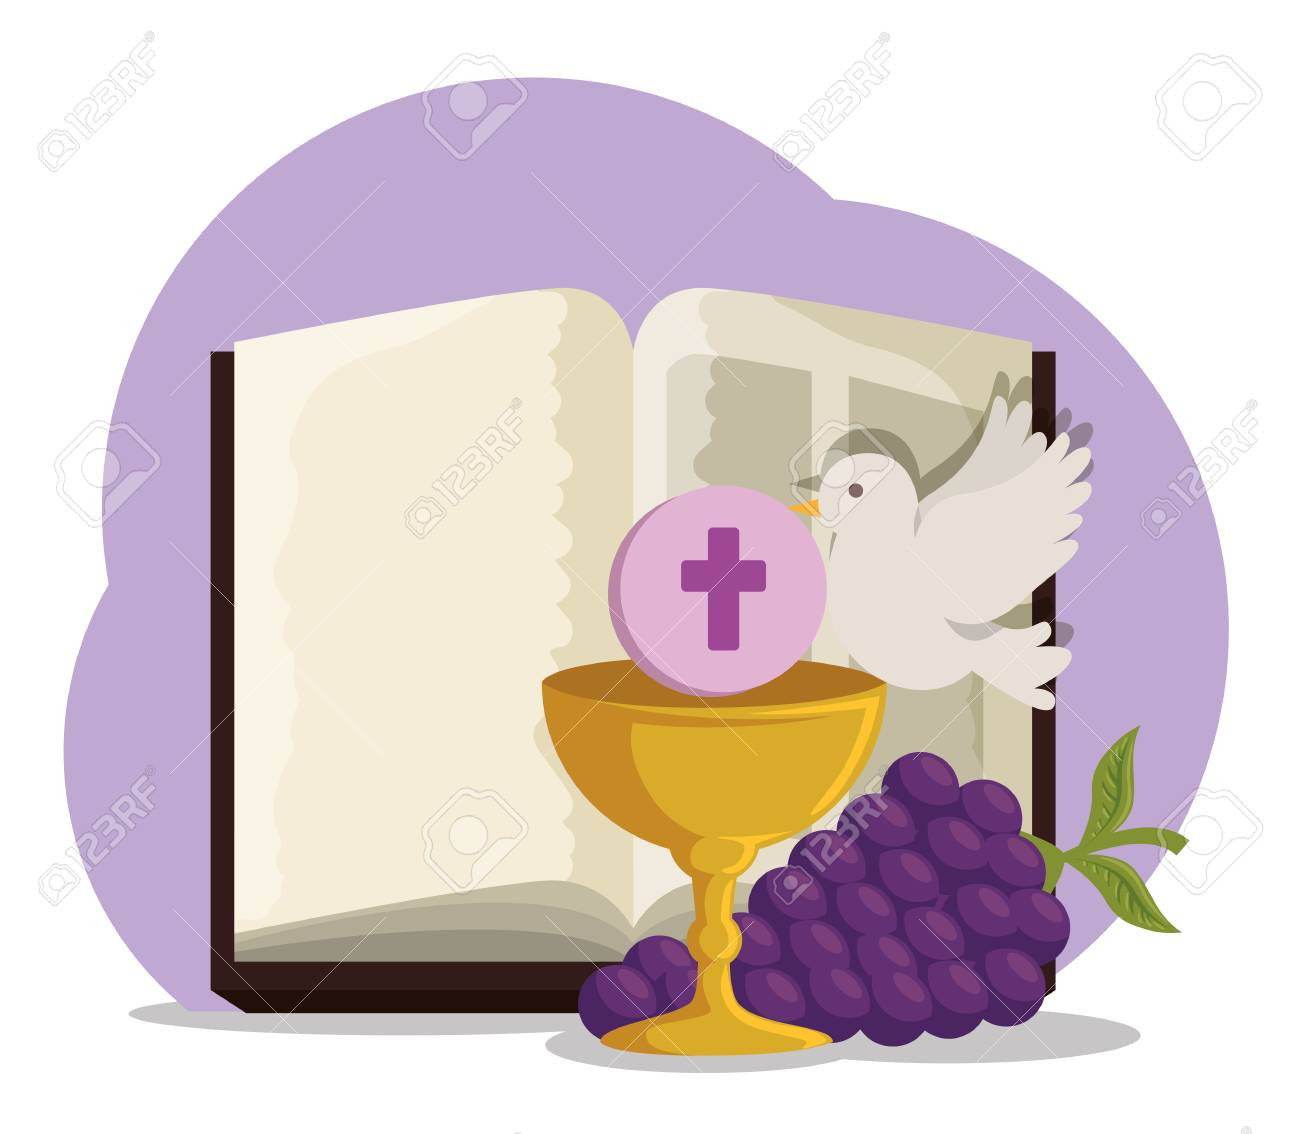 bible with chalice and grapes to first communion vector illustration - 119757331